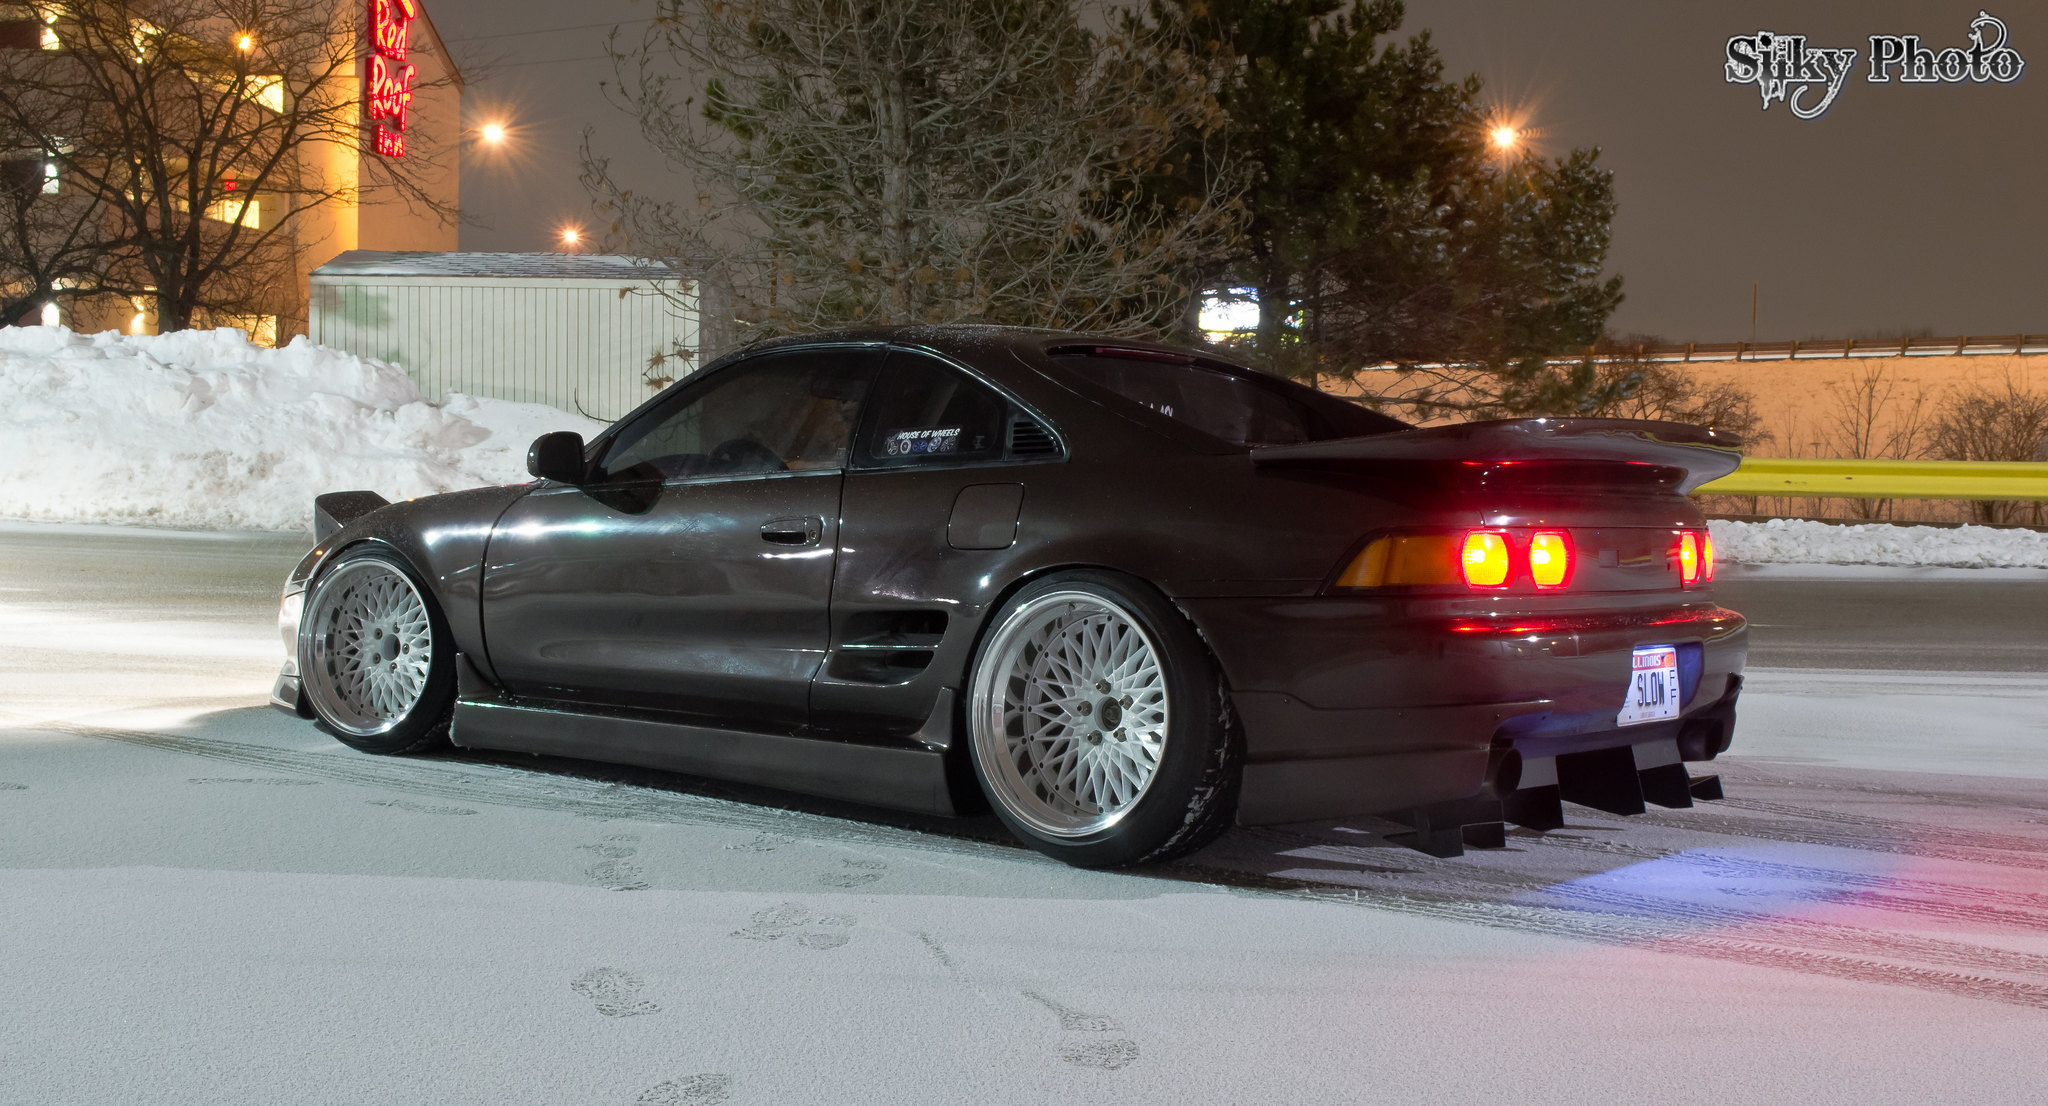 87432a71603 The Aggressive Wheel Fitment Thread - Part 28 - Page 14 - MR2 Owners ...